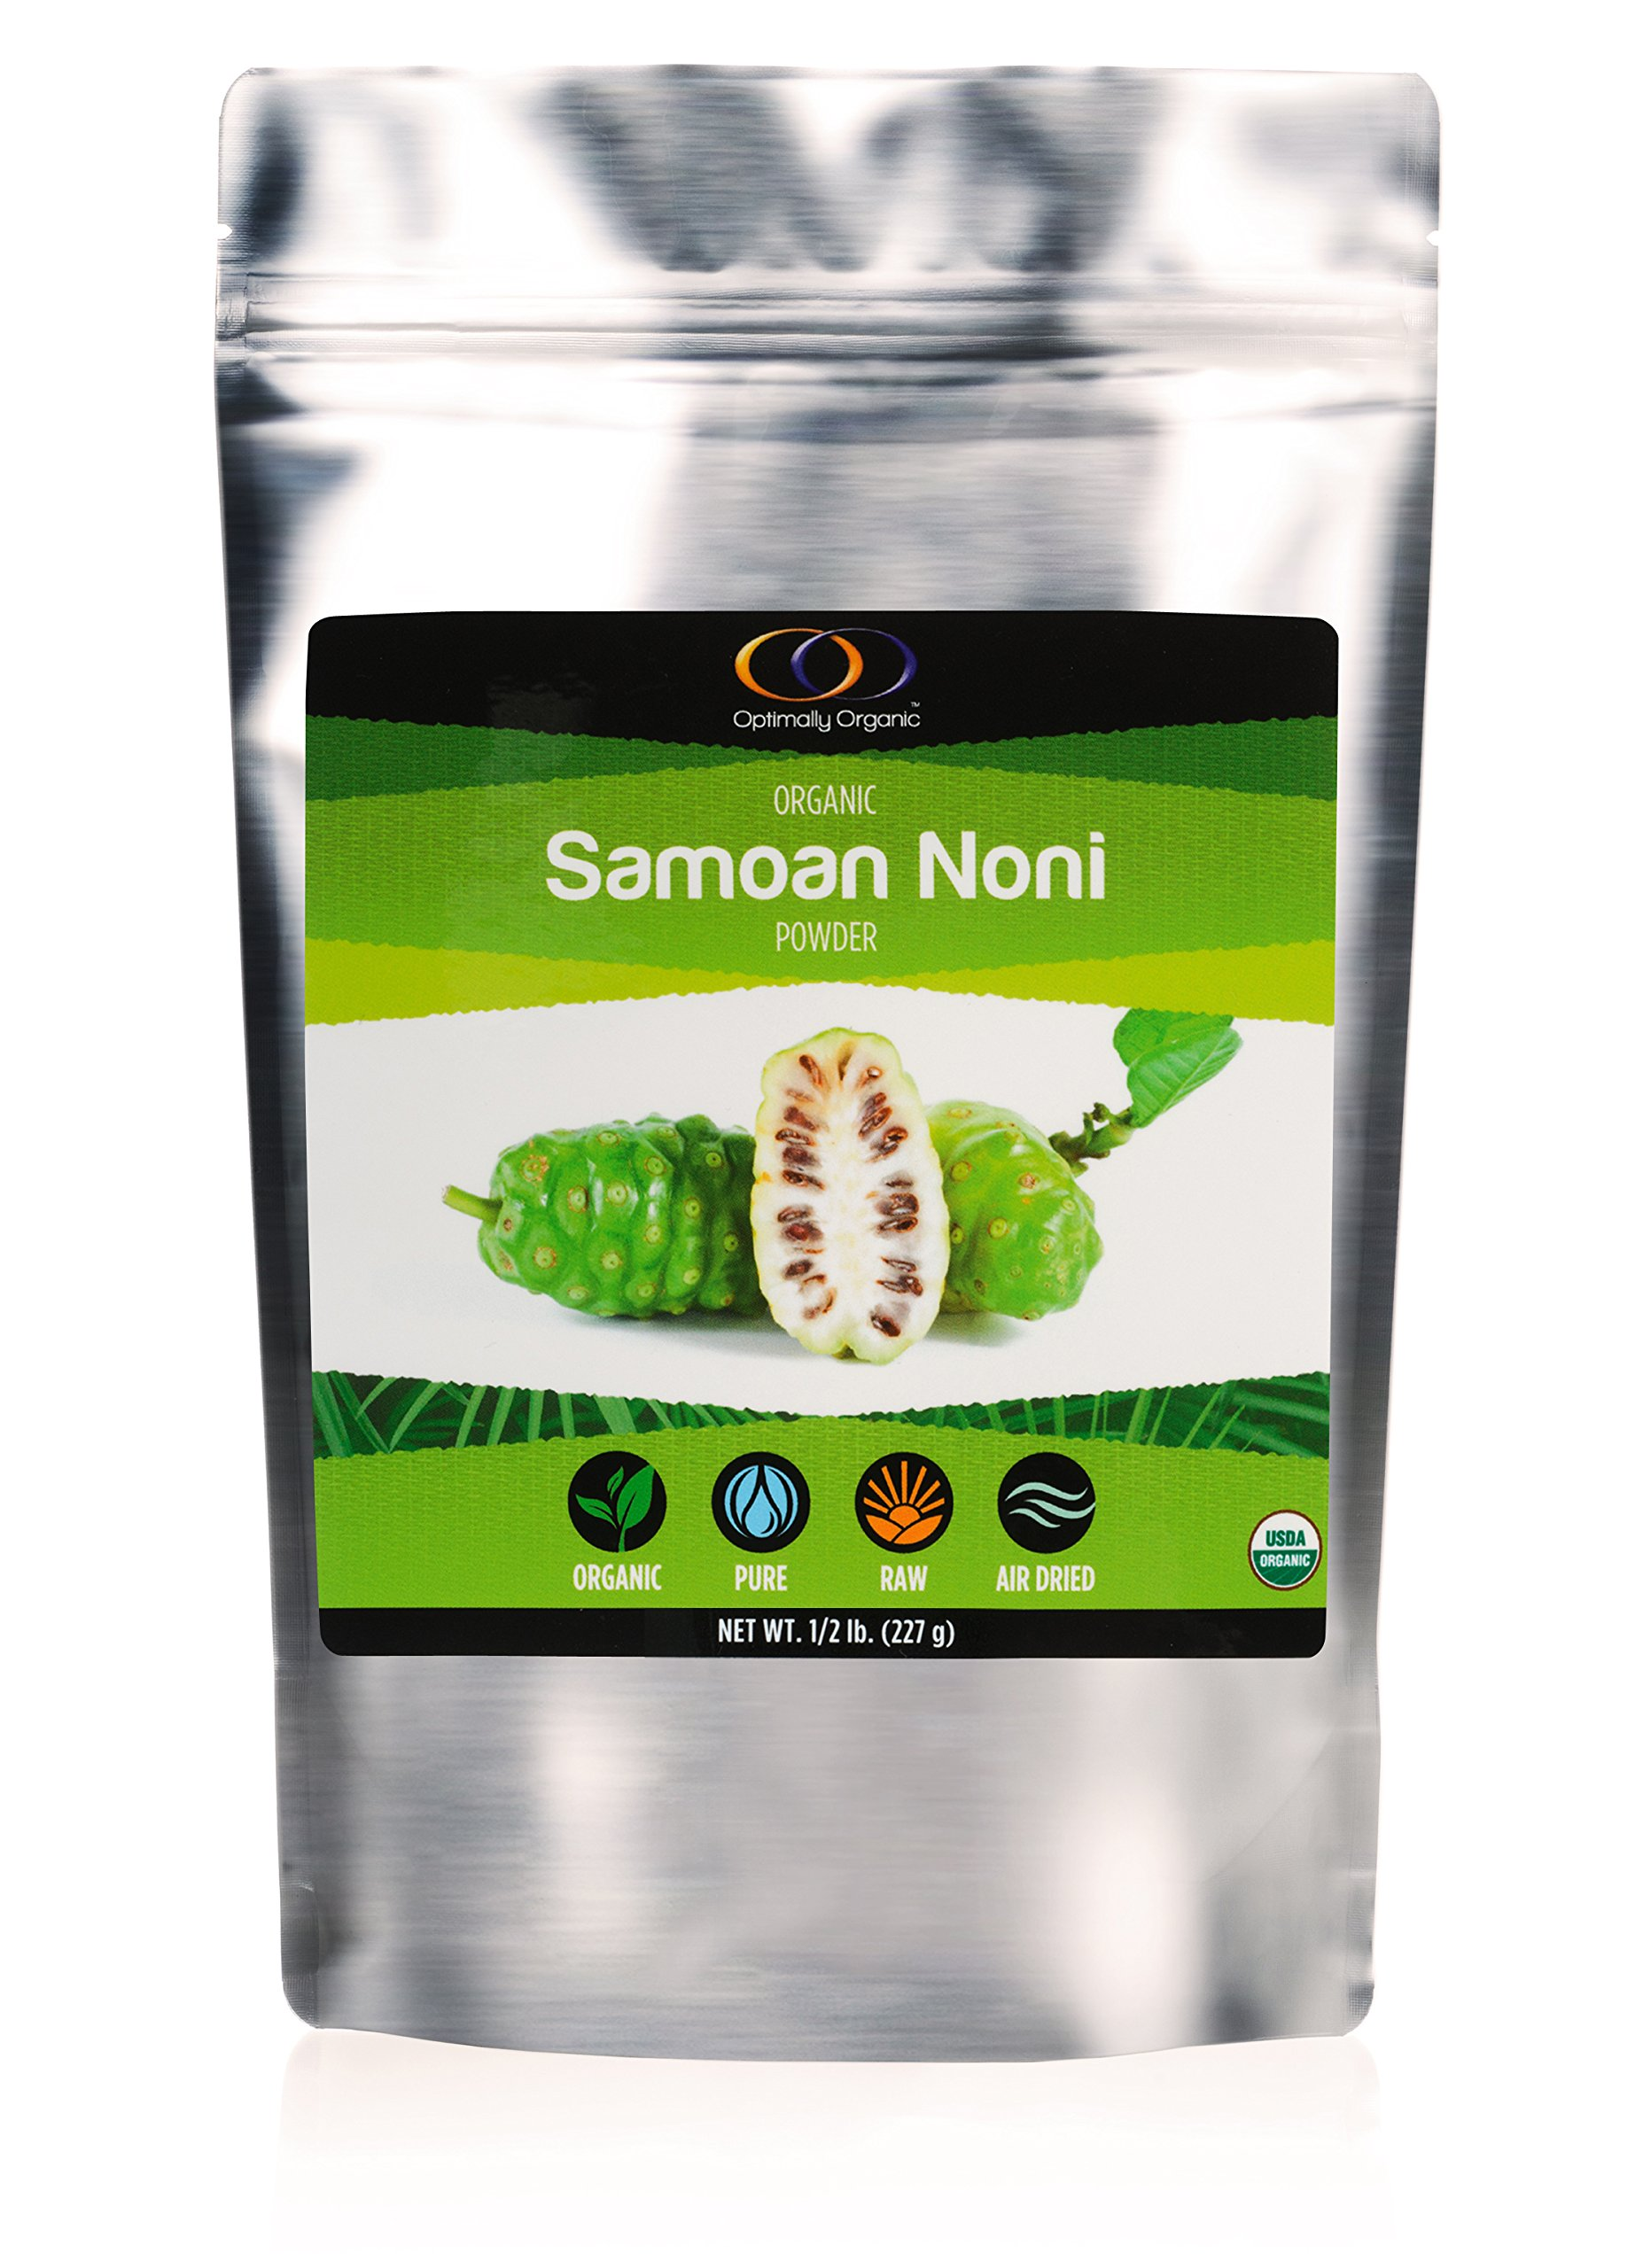 Optimally Organic Raw Samoan Whole Fruit Noni Powder - Powerful Source of Enzymes, Fiber, and Probiotics - Air Dried, 1/2 lb